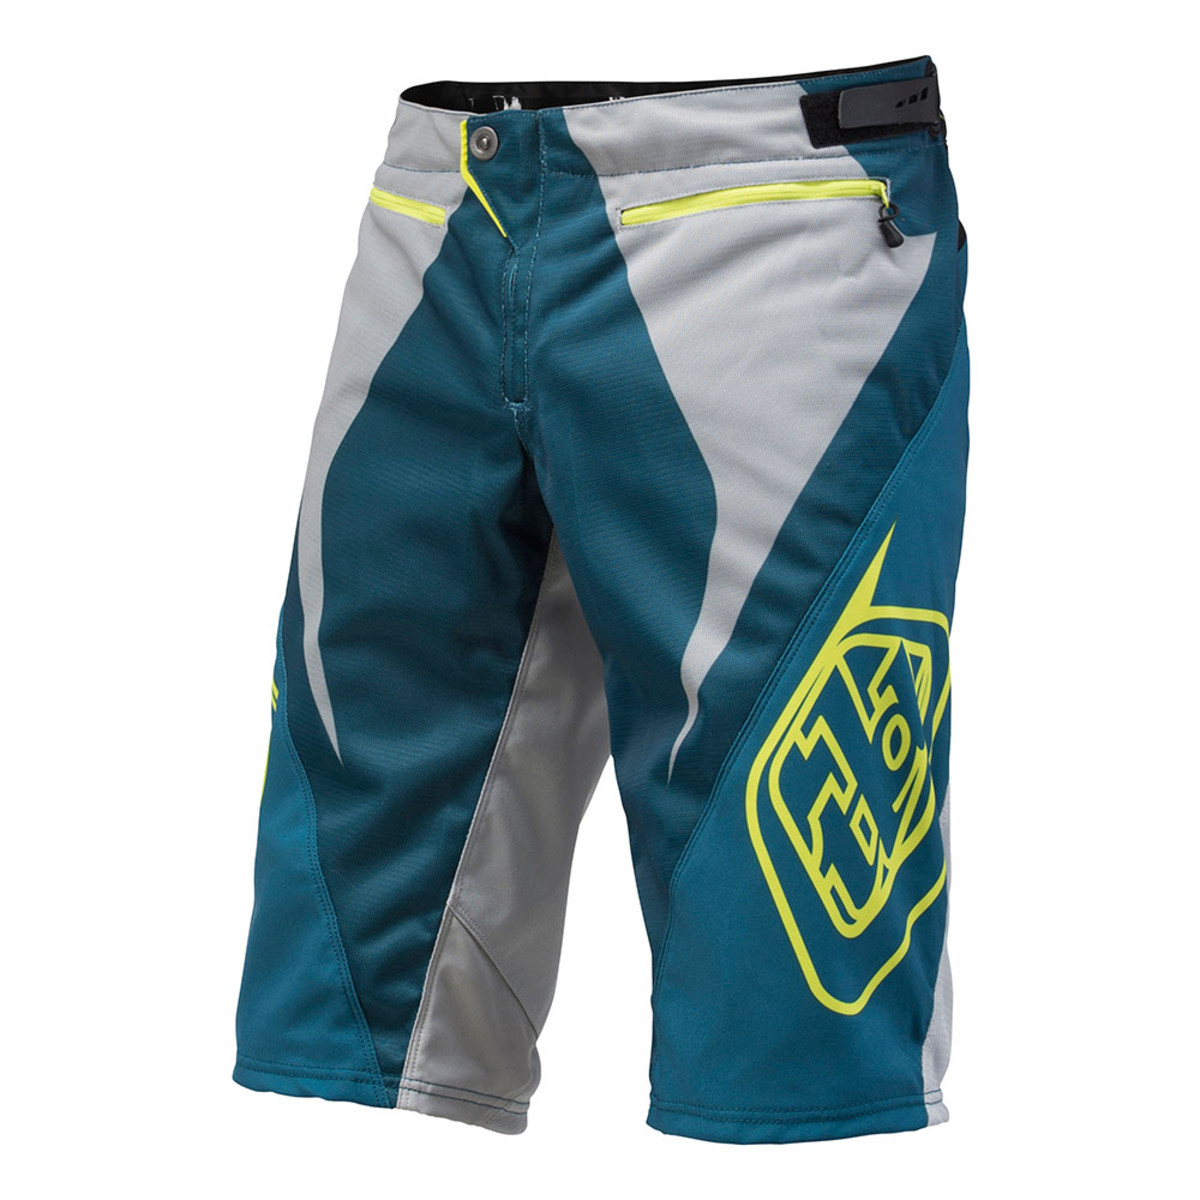 10 Best Mountain Bike Shorts for 2016 - Page 2 of 2